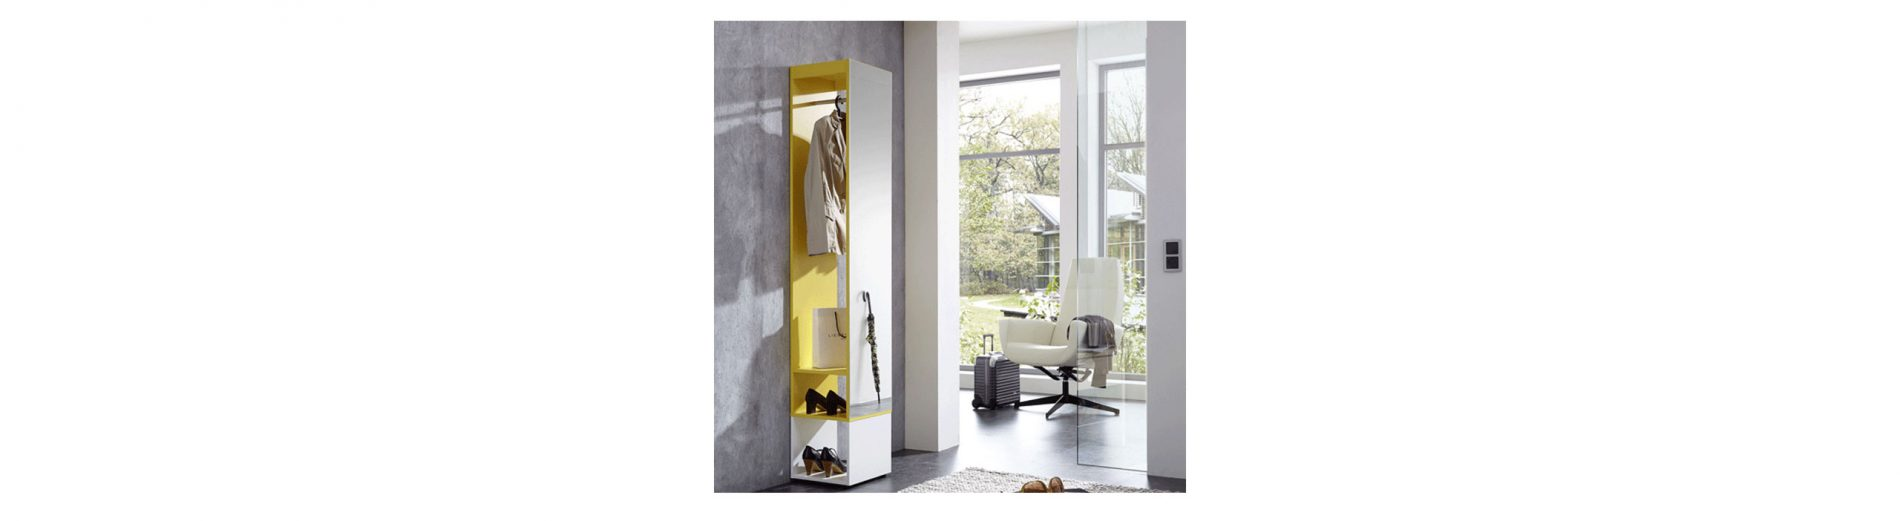 How To Furnish An Entrance Hall: Two Basic Approaches